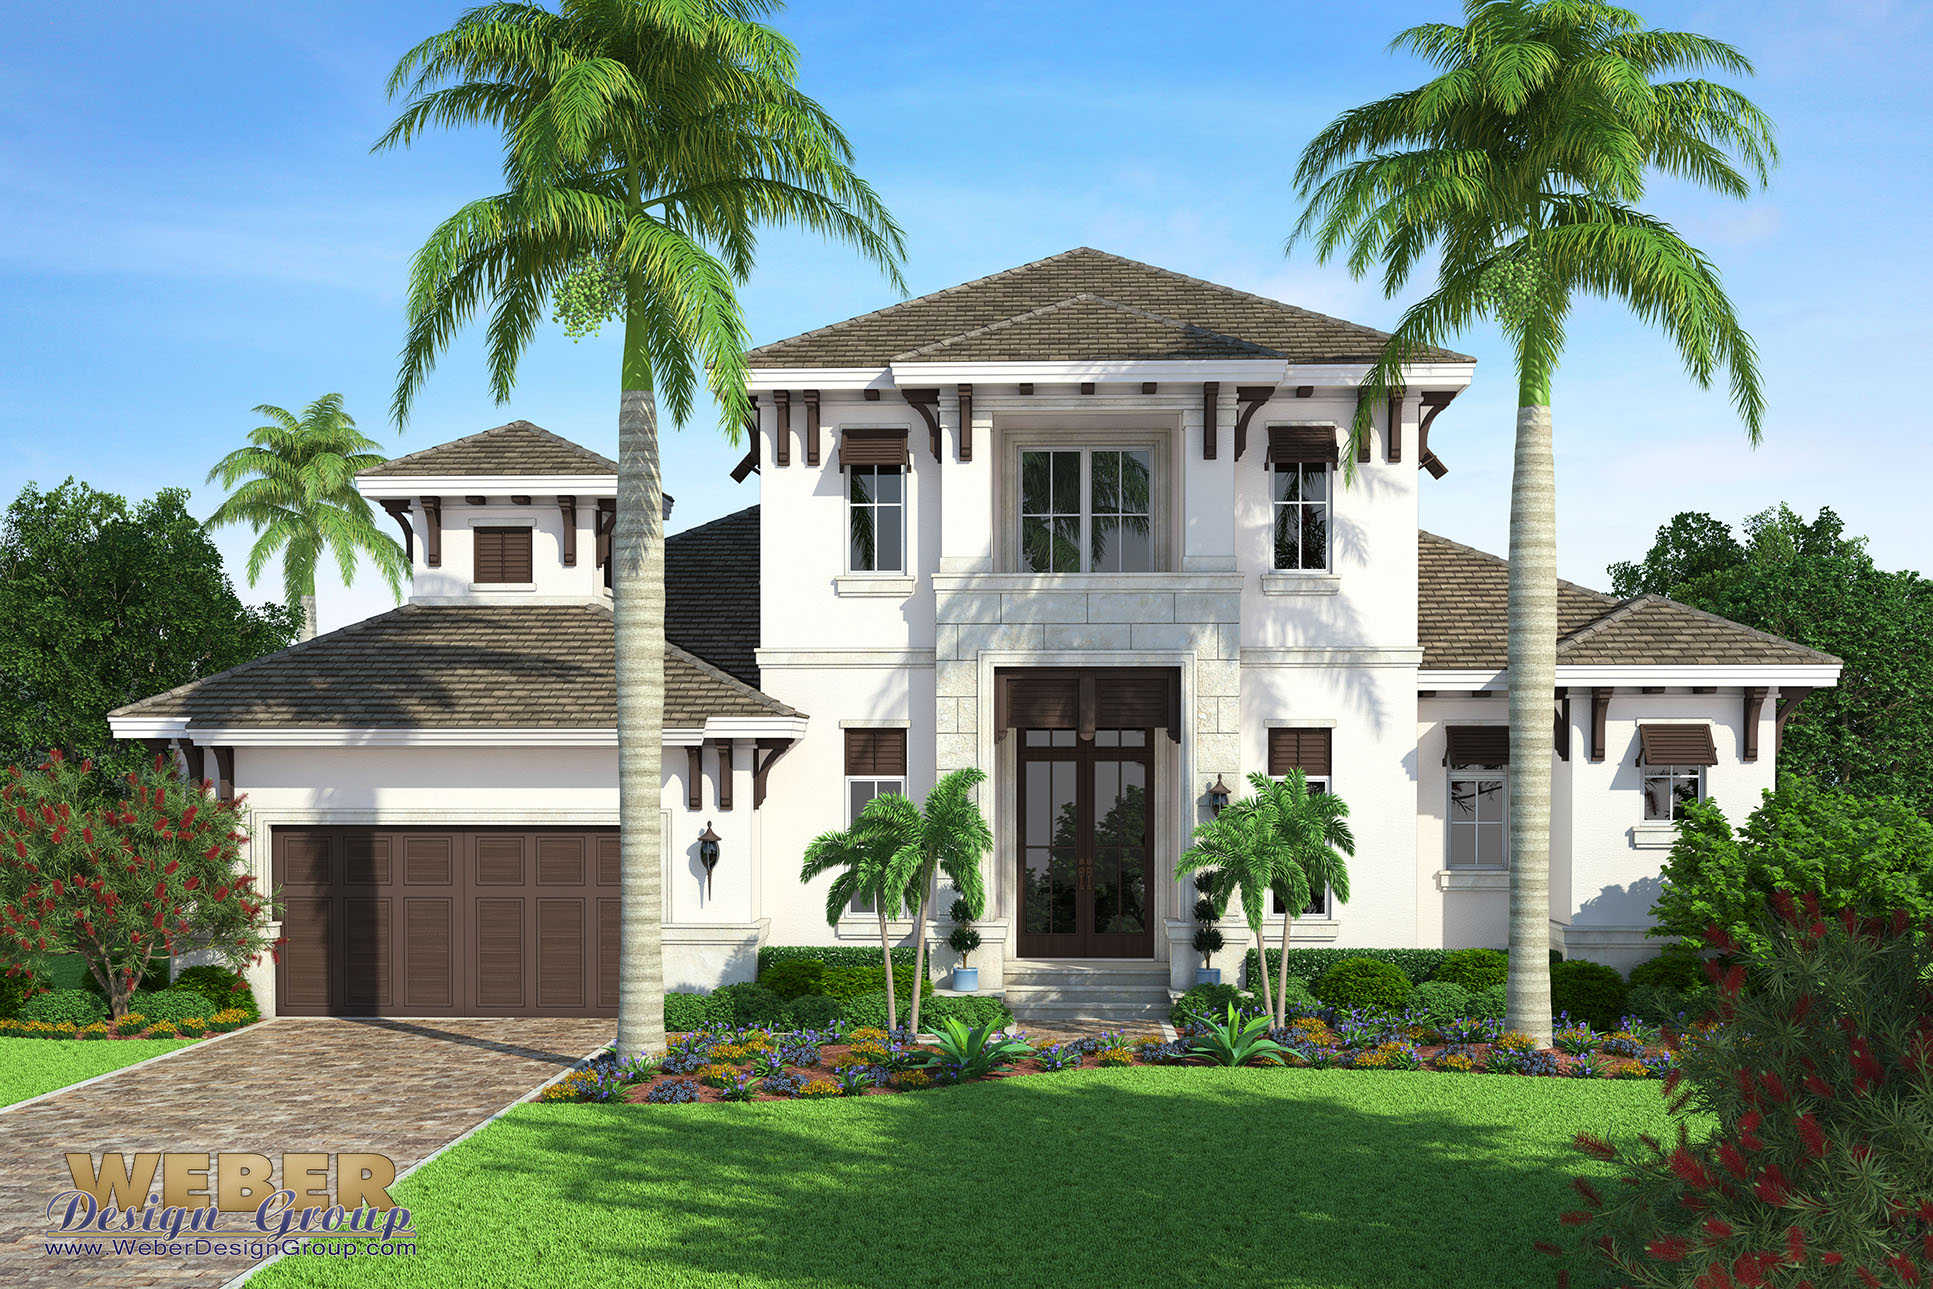 West indies home plan edgewater model weber design group for West indies house plans